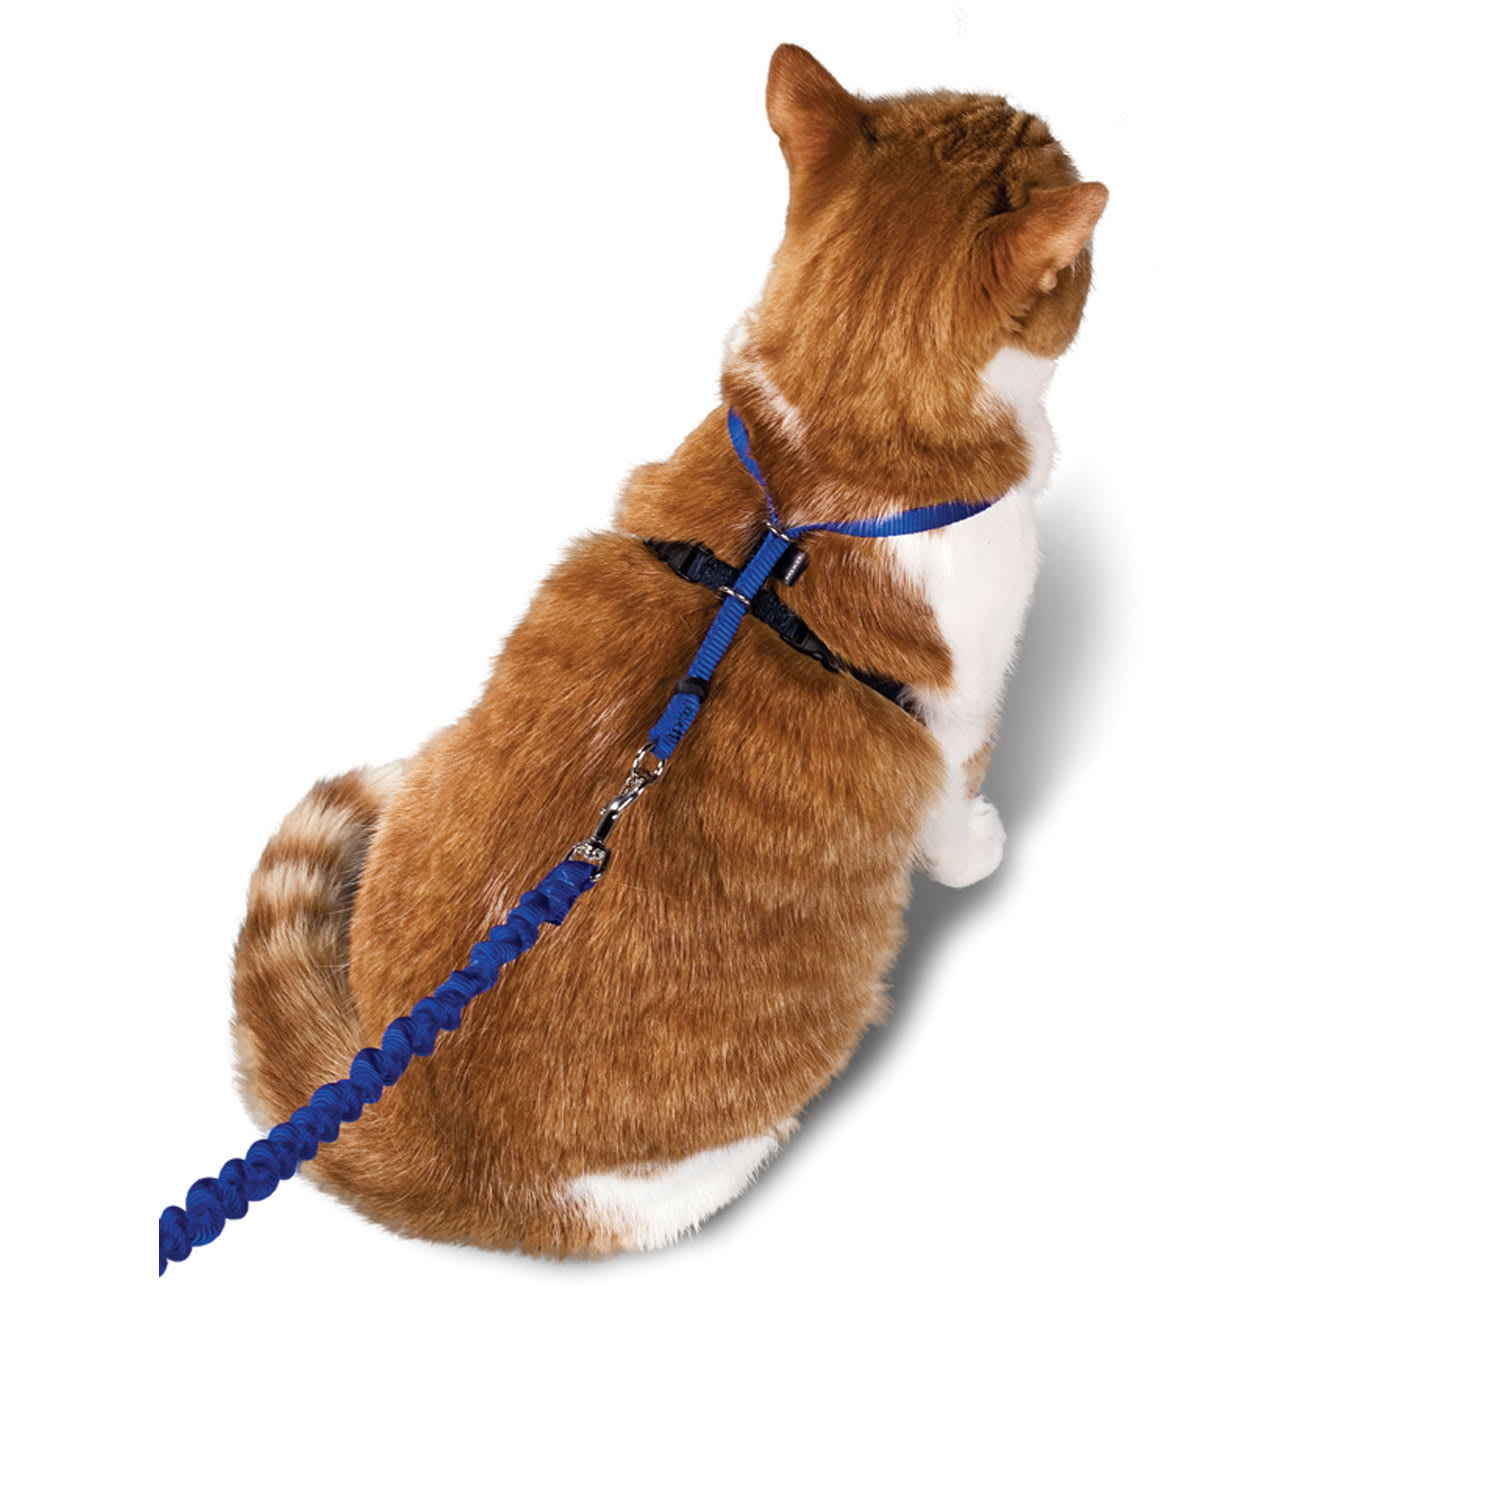 With Me Kitty Harness Bungee Leash